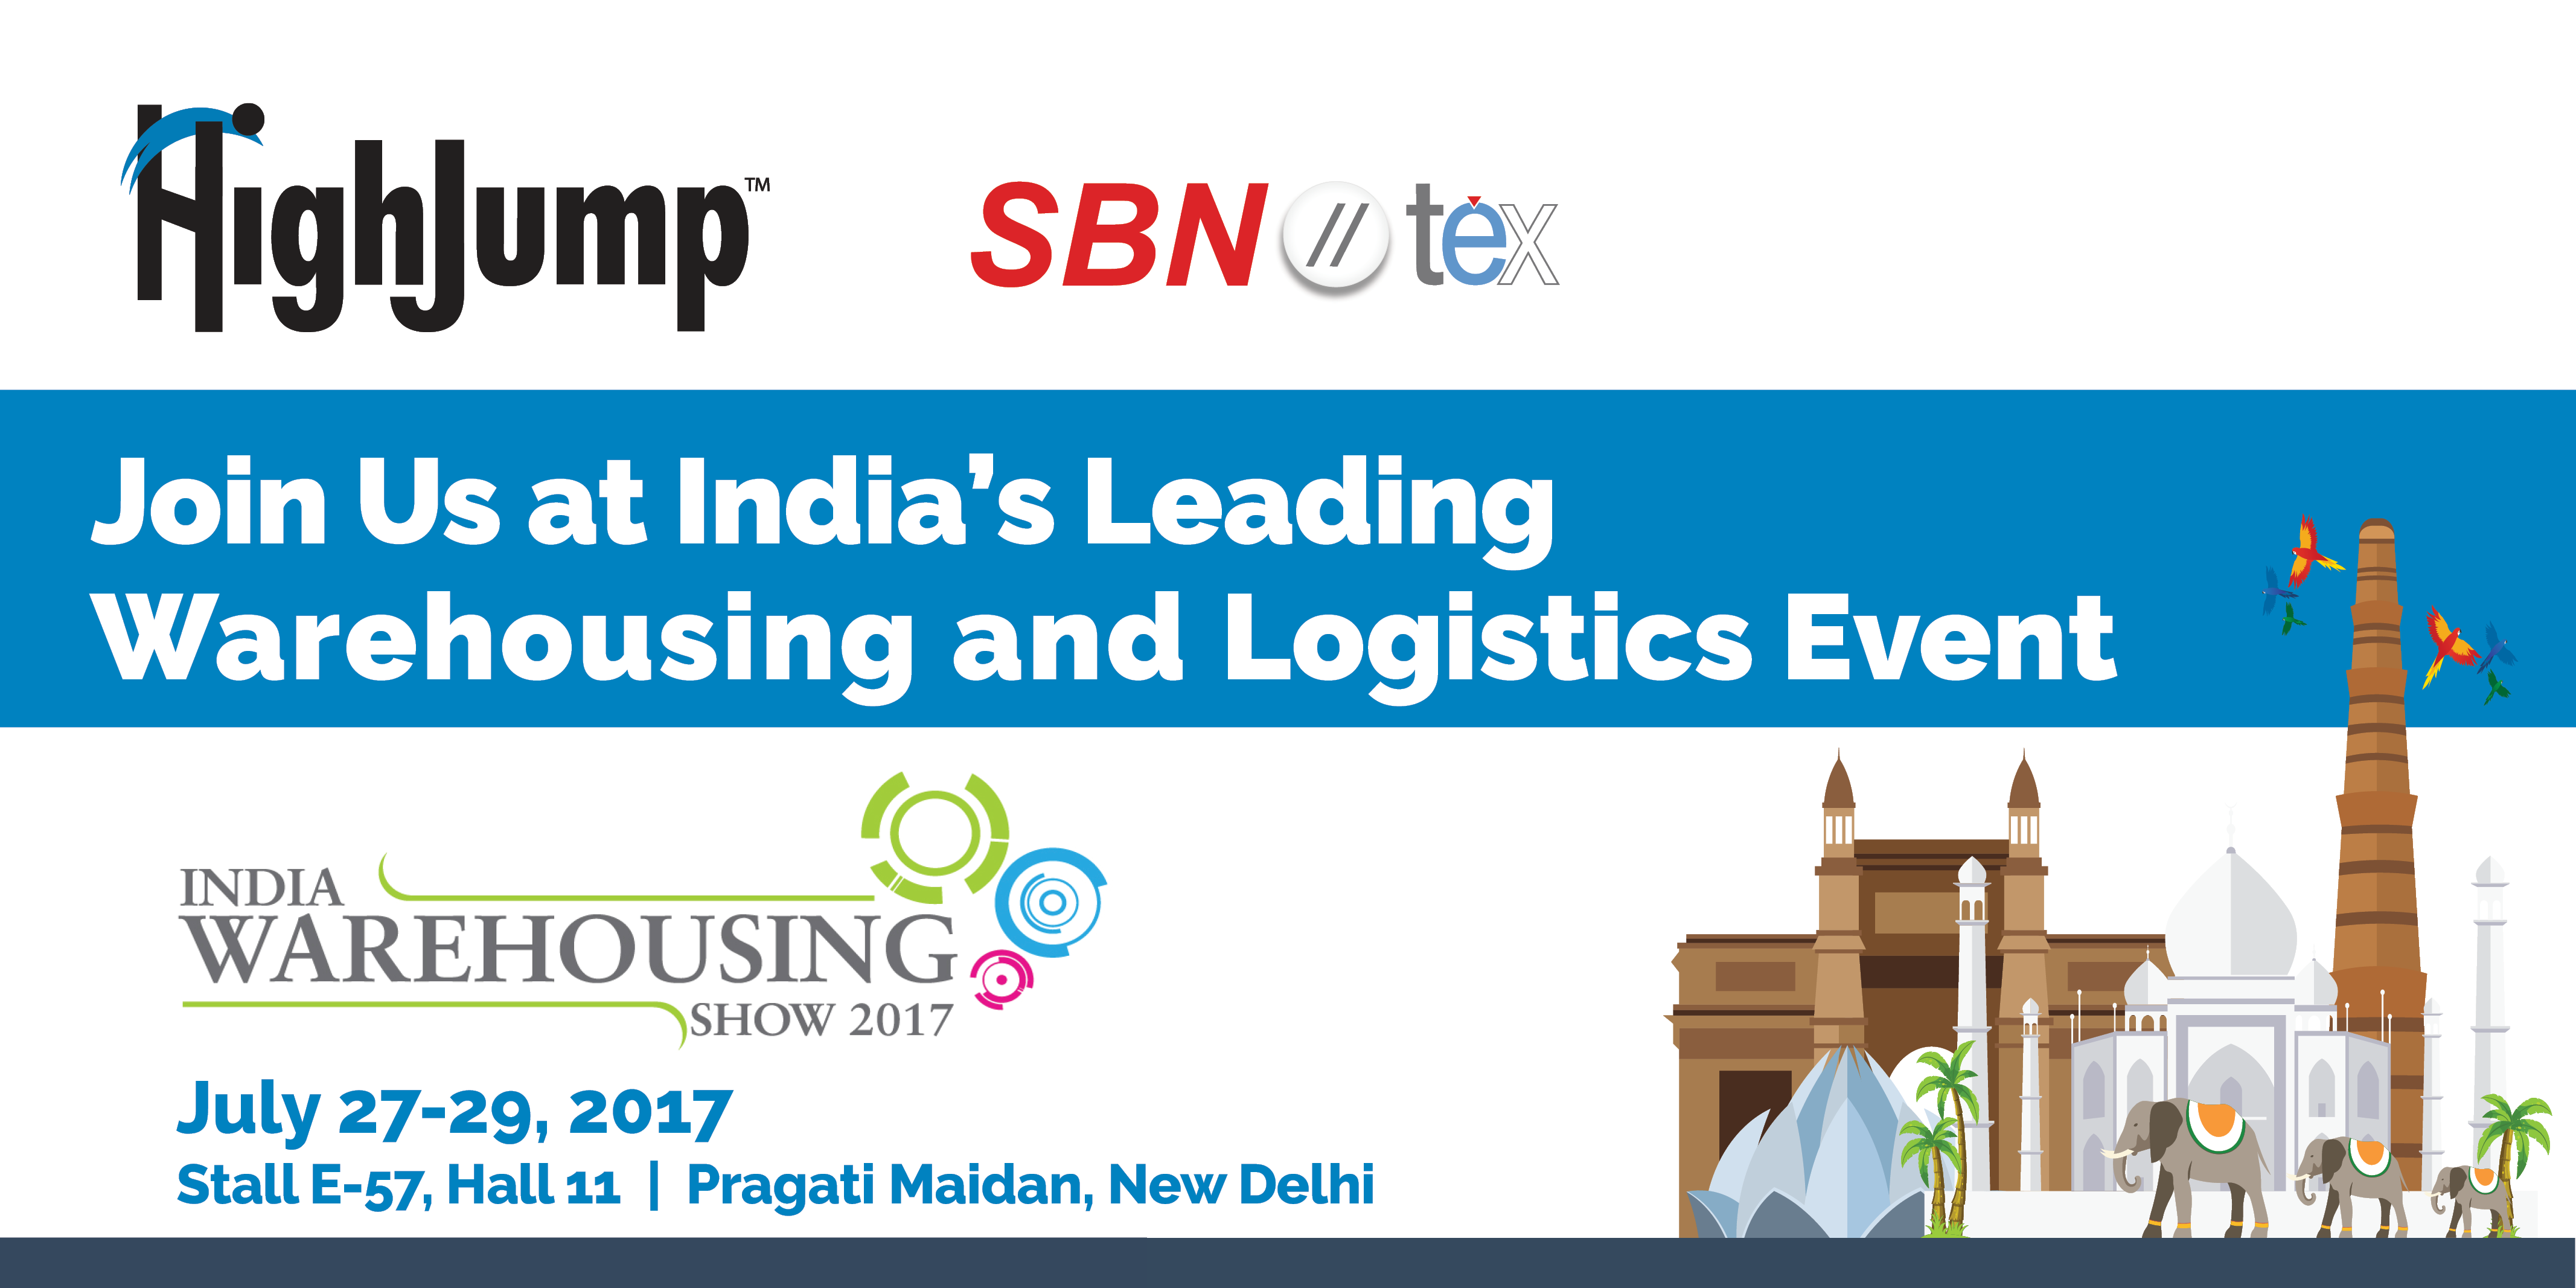 Twitter-Banner - India warehousing Show.png